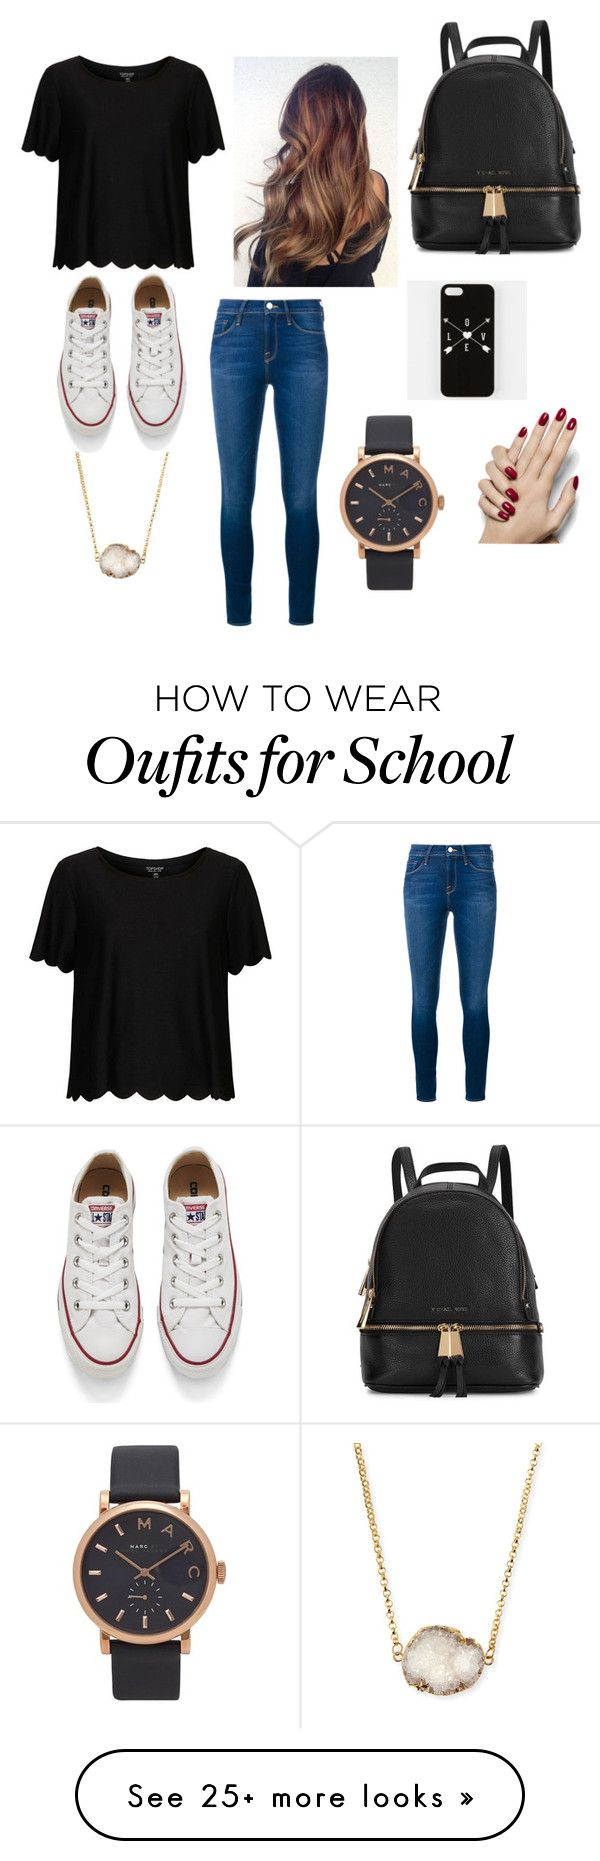 """School day"" by karissaibrahim14 on Polyvore featuring Mode, Frame Denim, Topshop, Converse, Michael Kors, Jules Smith, Marc by Marc Jacobs, women's clothing, women und female"